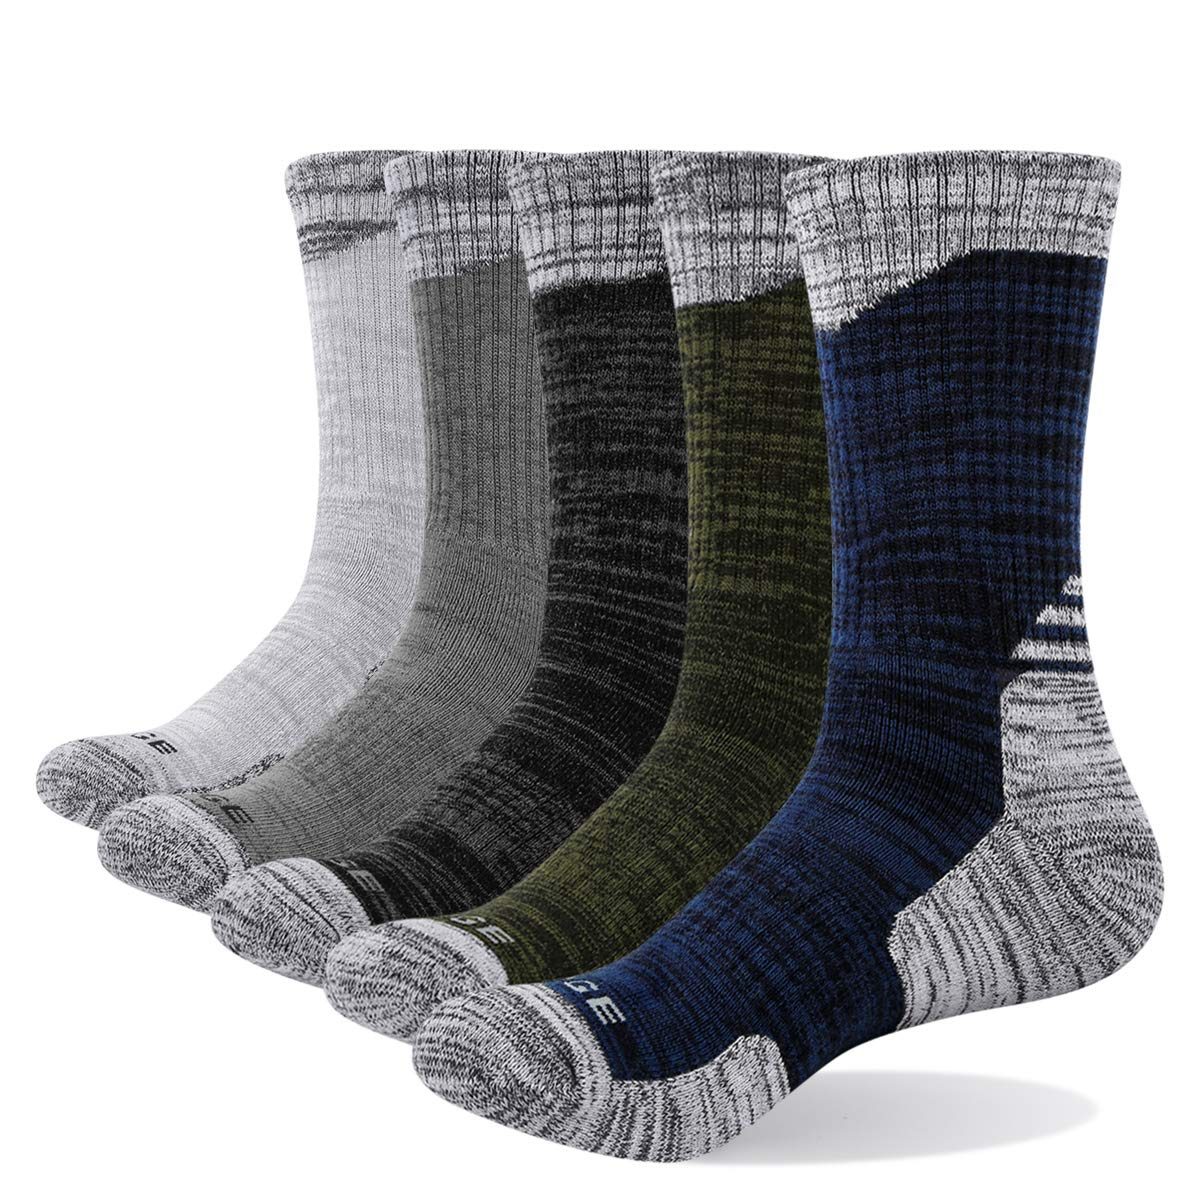 YUEDGE Men's Cotton Cushion Crew Socks Performance Athletic Hiking Socks (5 Pairs/Pack XL) by YUEDGE